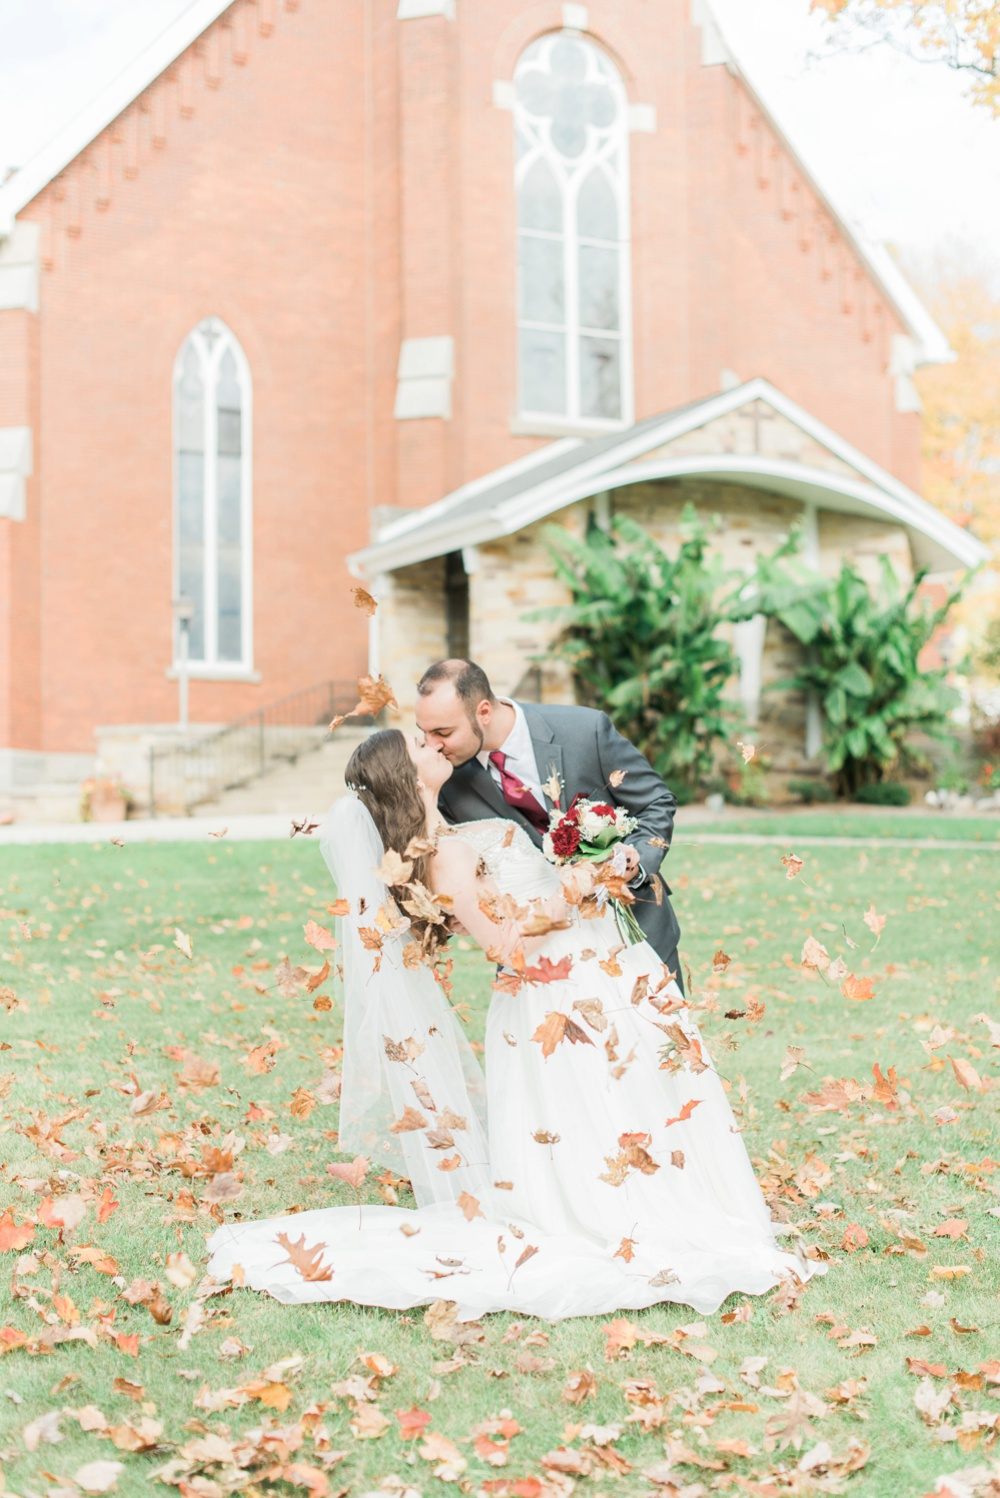 ricciardis-tree-farm-wedding-wadsworth-ohio-lauren-ryan_0046.jpg